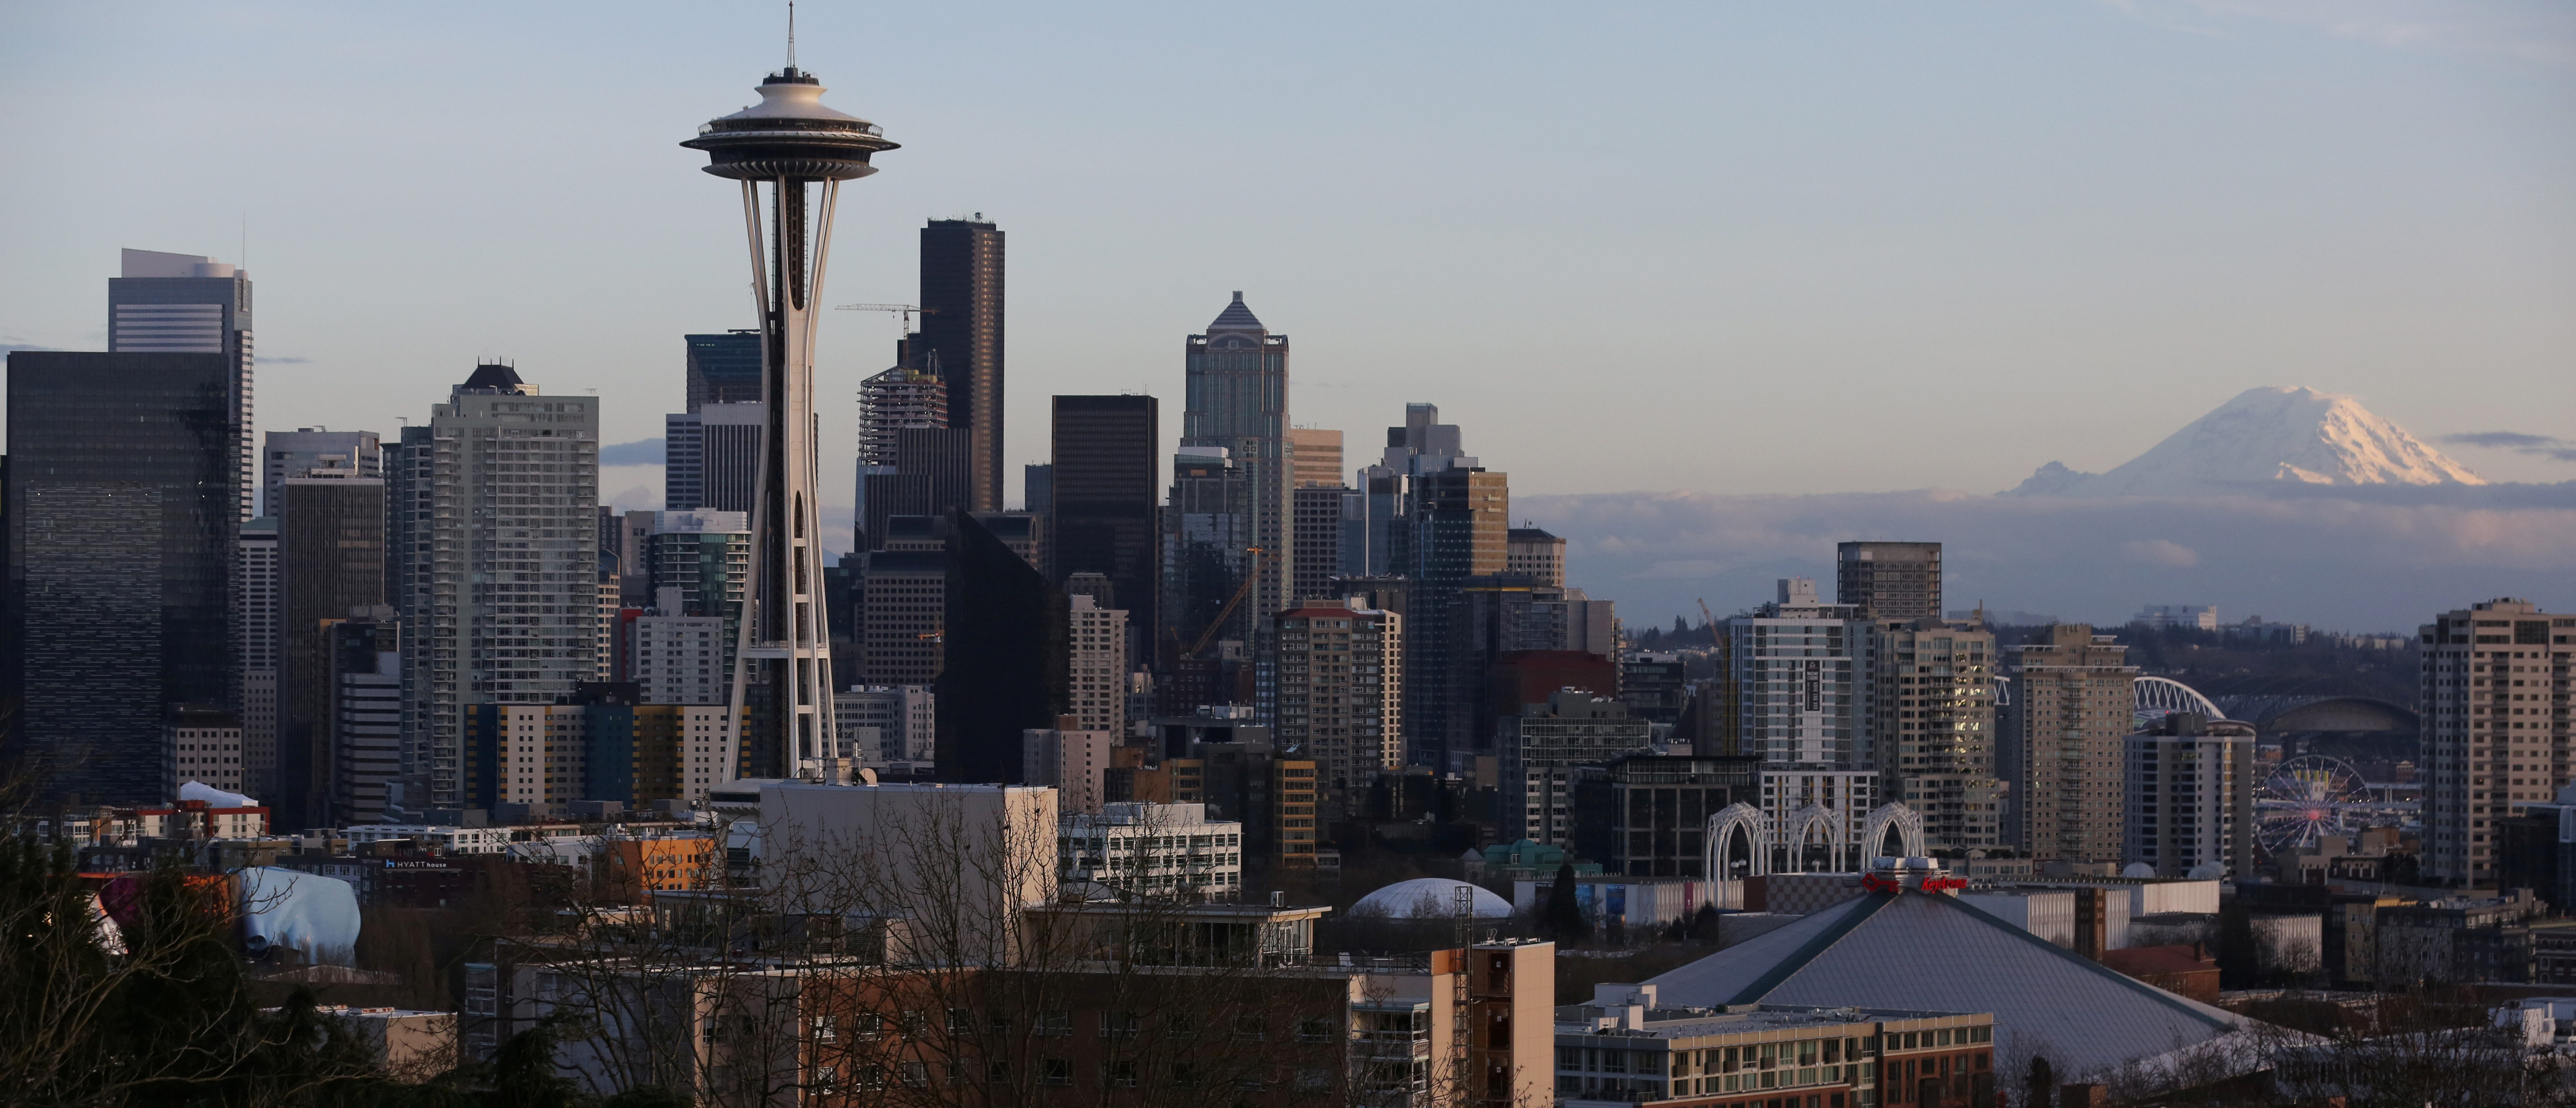 The Space Needle and Mount Rainier are seen on the skyline of Seattle, Washington, U.S. February 11, 2017. REUTERS/Chris Helgren - RC120DB522E0